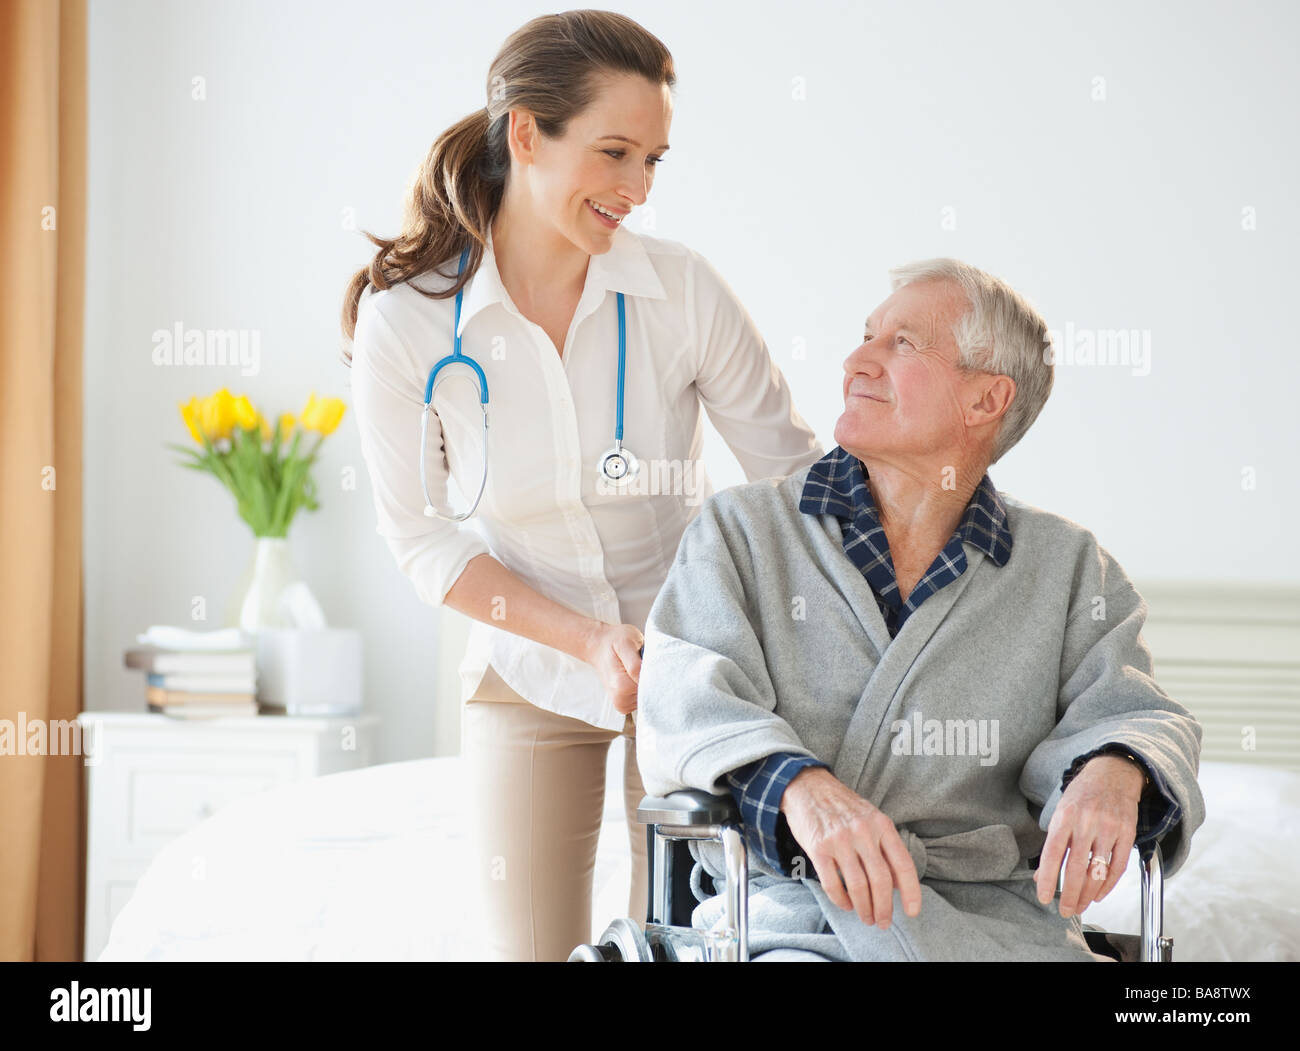 Nurse helping senior man in wheelchair - Stock Image